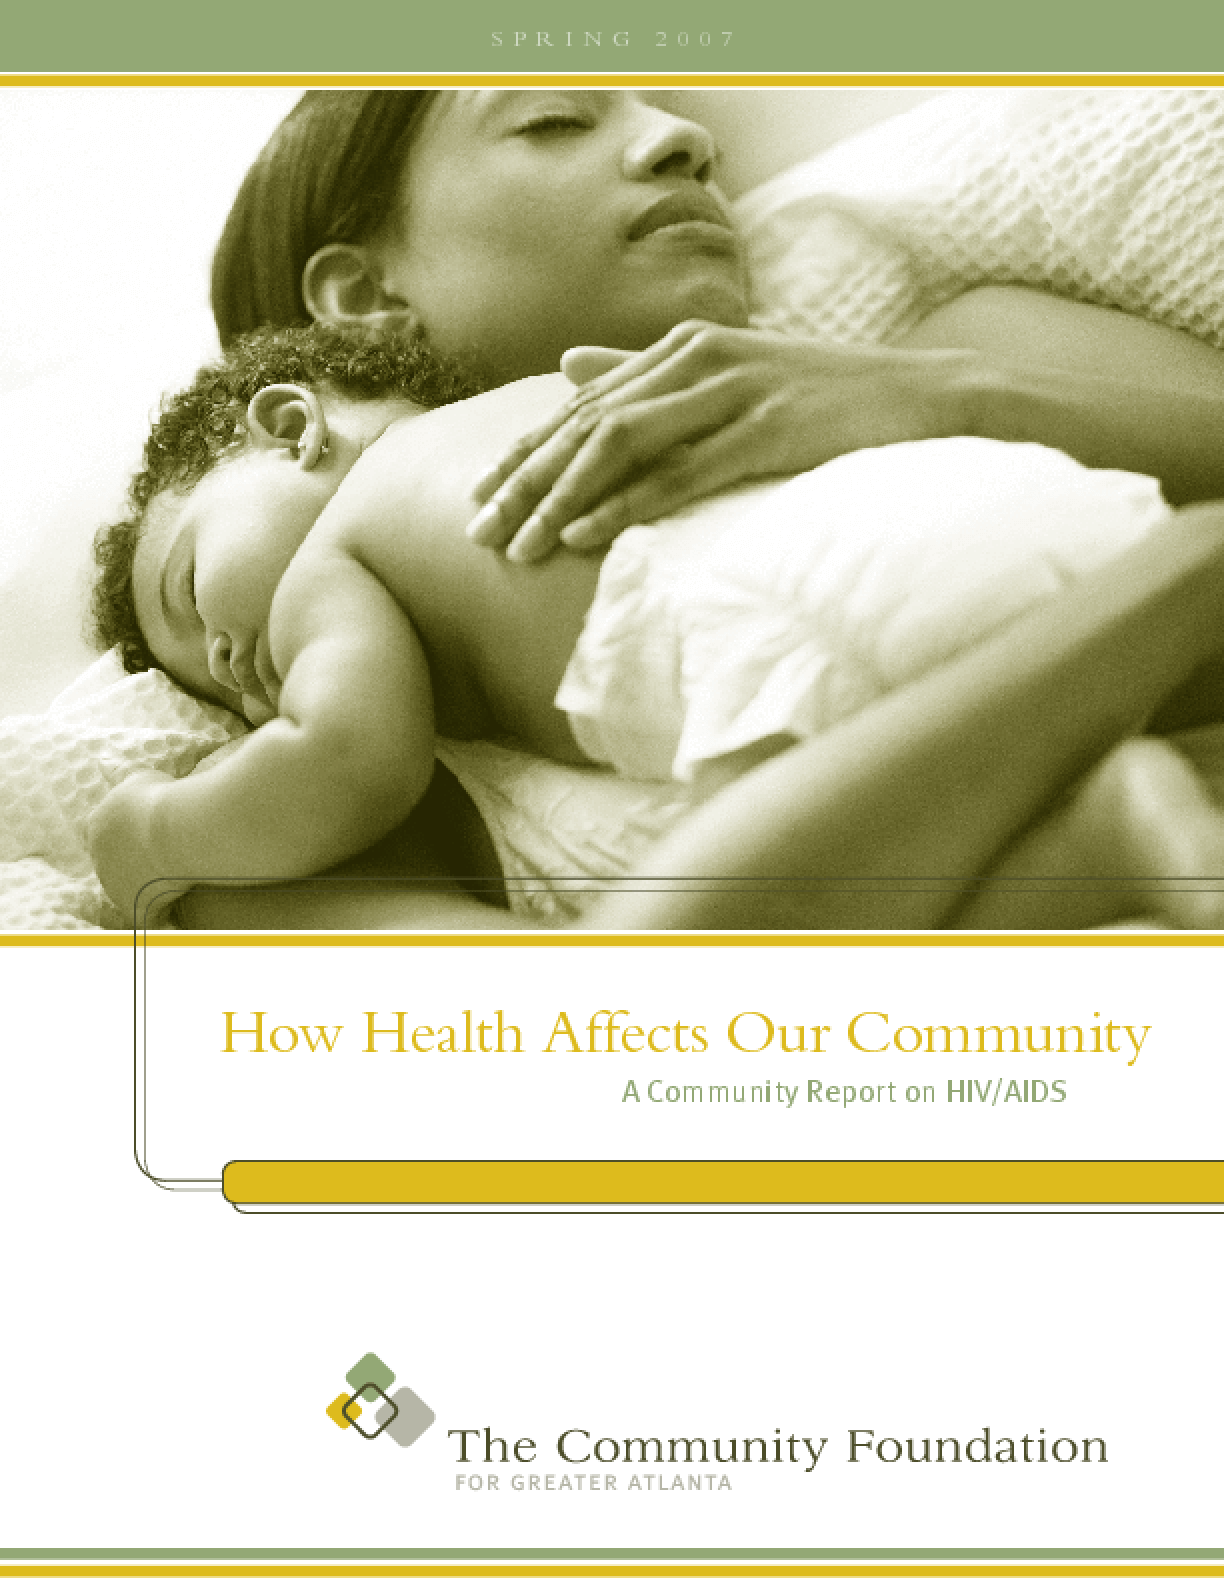 The Community Foundation for Greater Atlanta's Community Report: How Health Affects Our Community